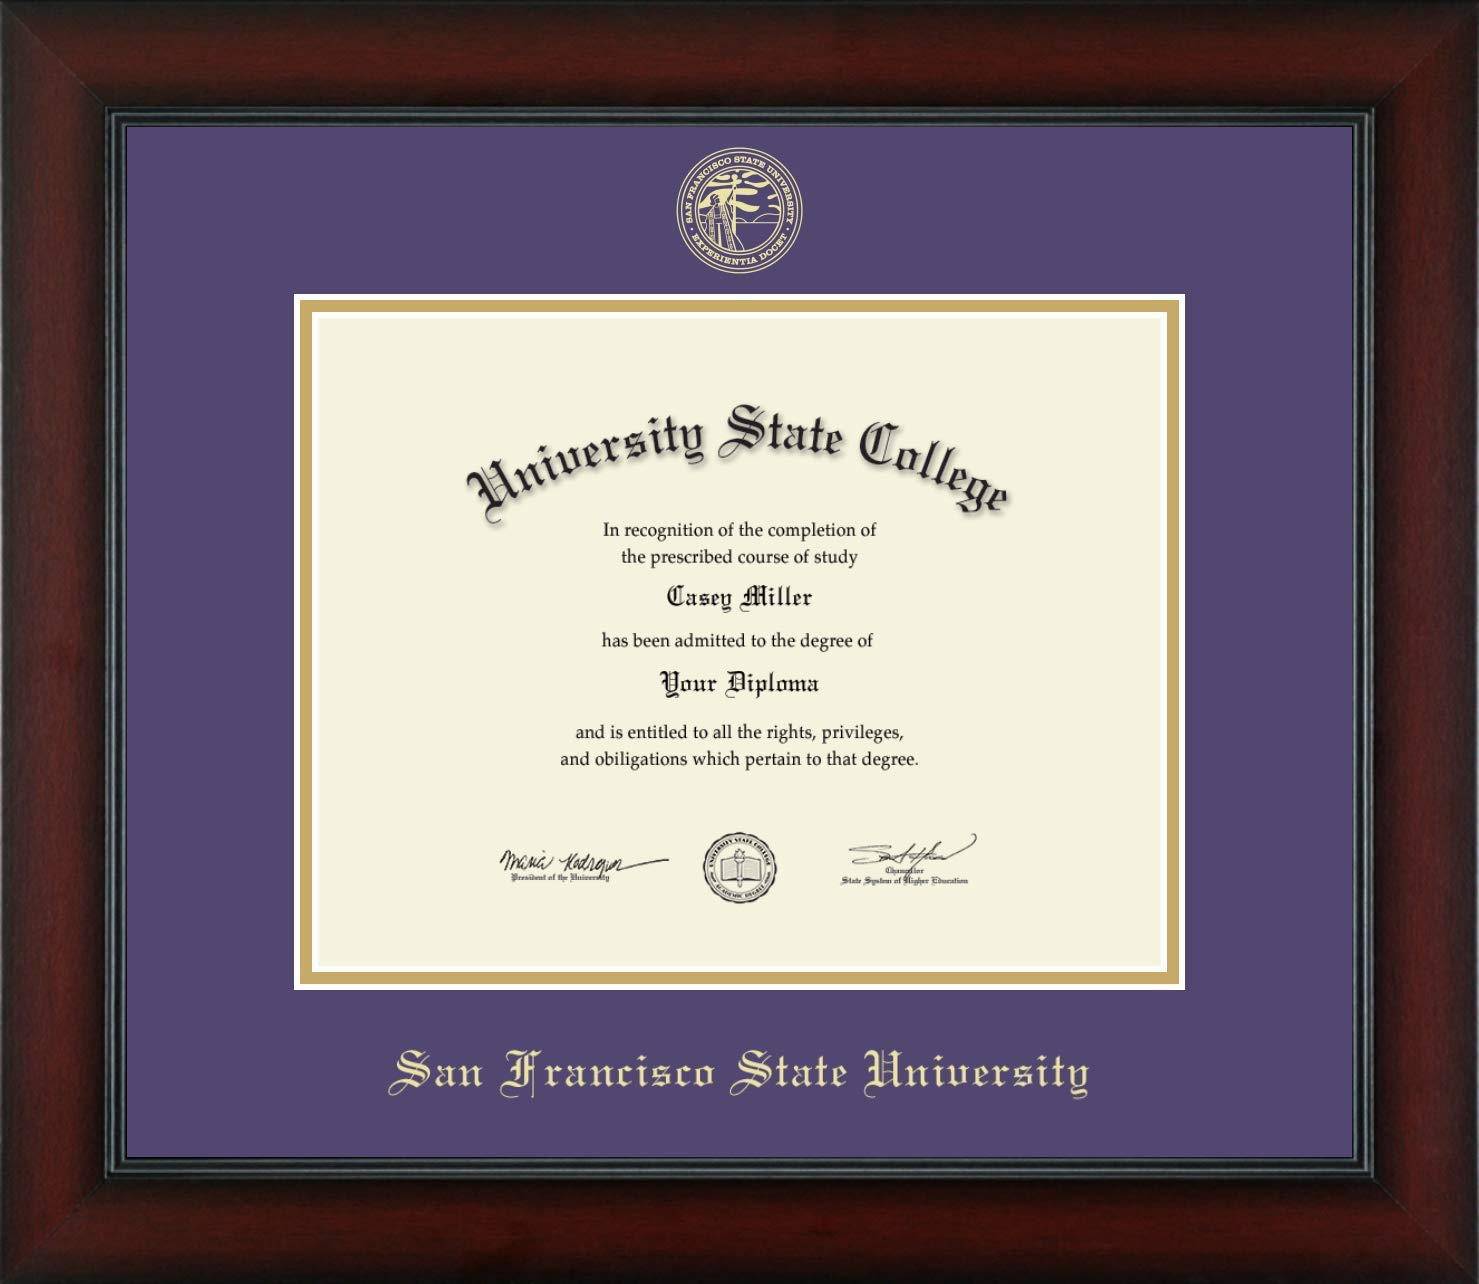 San Francisco State University - Officially Licensed - Gold Embossed Diploma Frame - Diploma Size 11'' x 8.5''